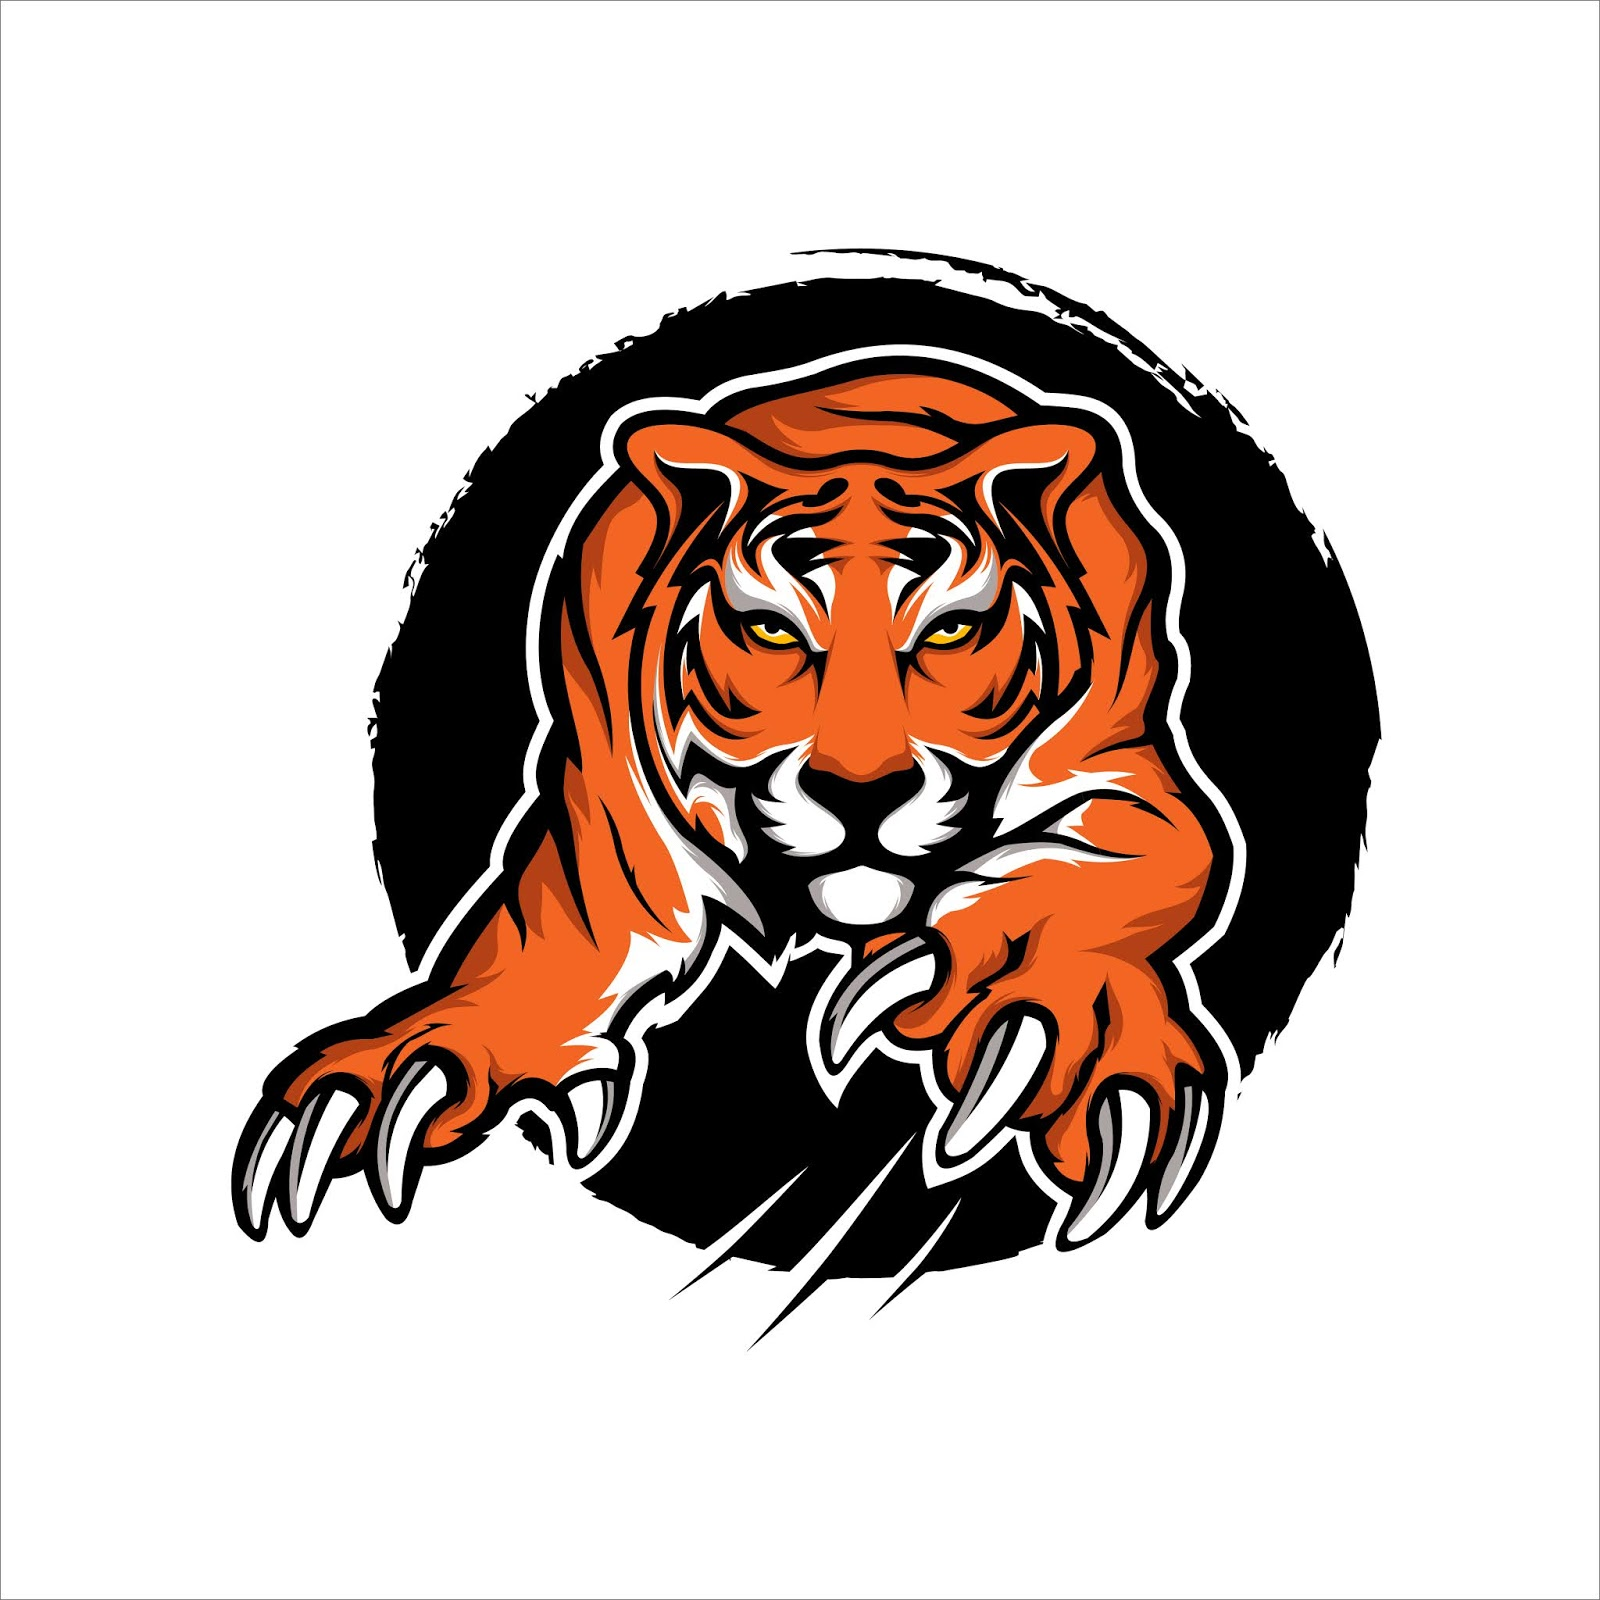 Tiger Mascot Sport Ilustration Free Download Vector CDR, AI, EPS and PNG Formats